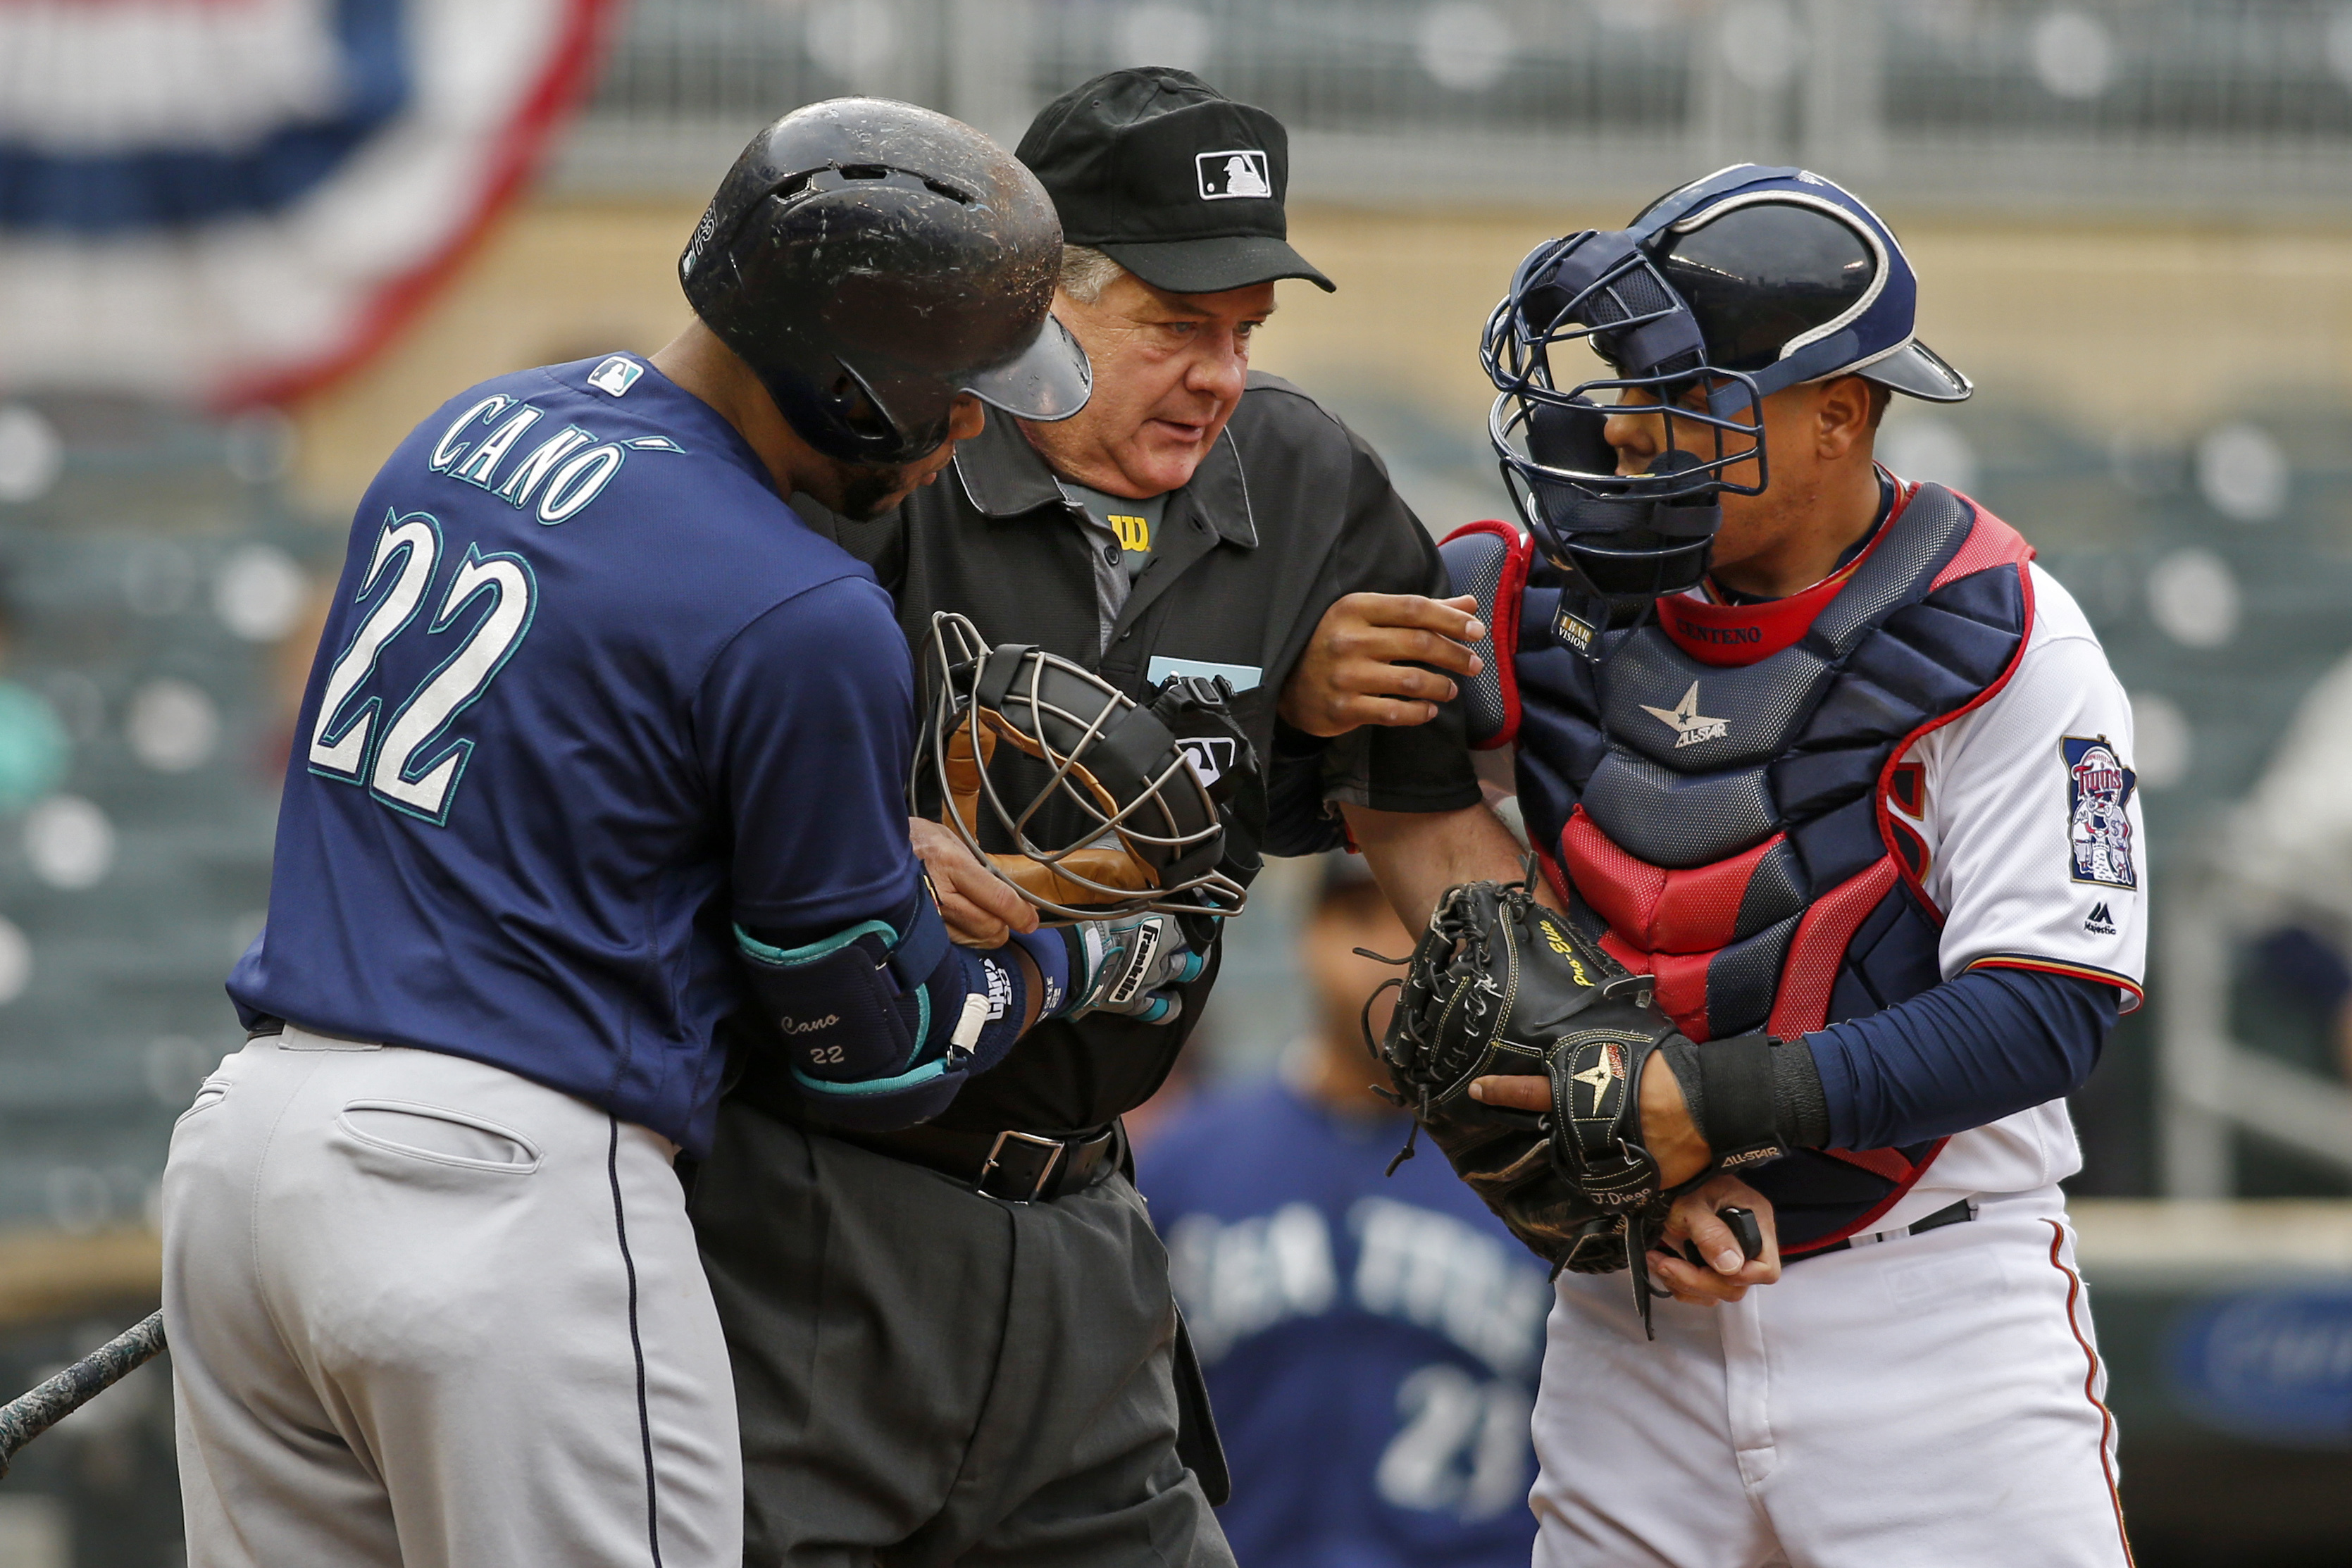 Seattle Mariners' Robinson Cano, left, and Minnesota Twins catcher Juan Centeno, right, hold up umpire Jerry Layne  who was hit by a foul ball in the first inning of a baseball game Sunday, Sept. 25, 2016, in Minneapolis. Layne left the game. (AP Photo/Br